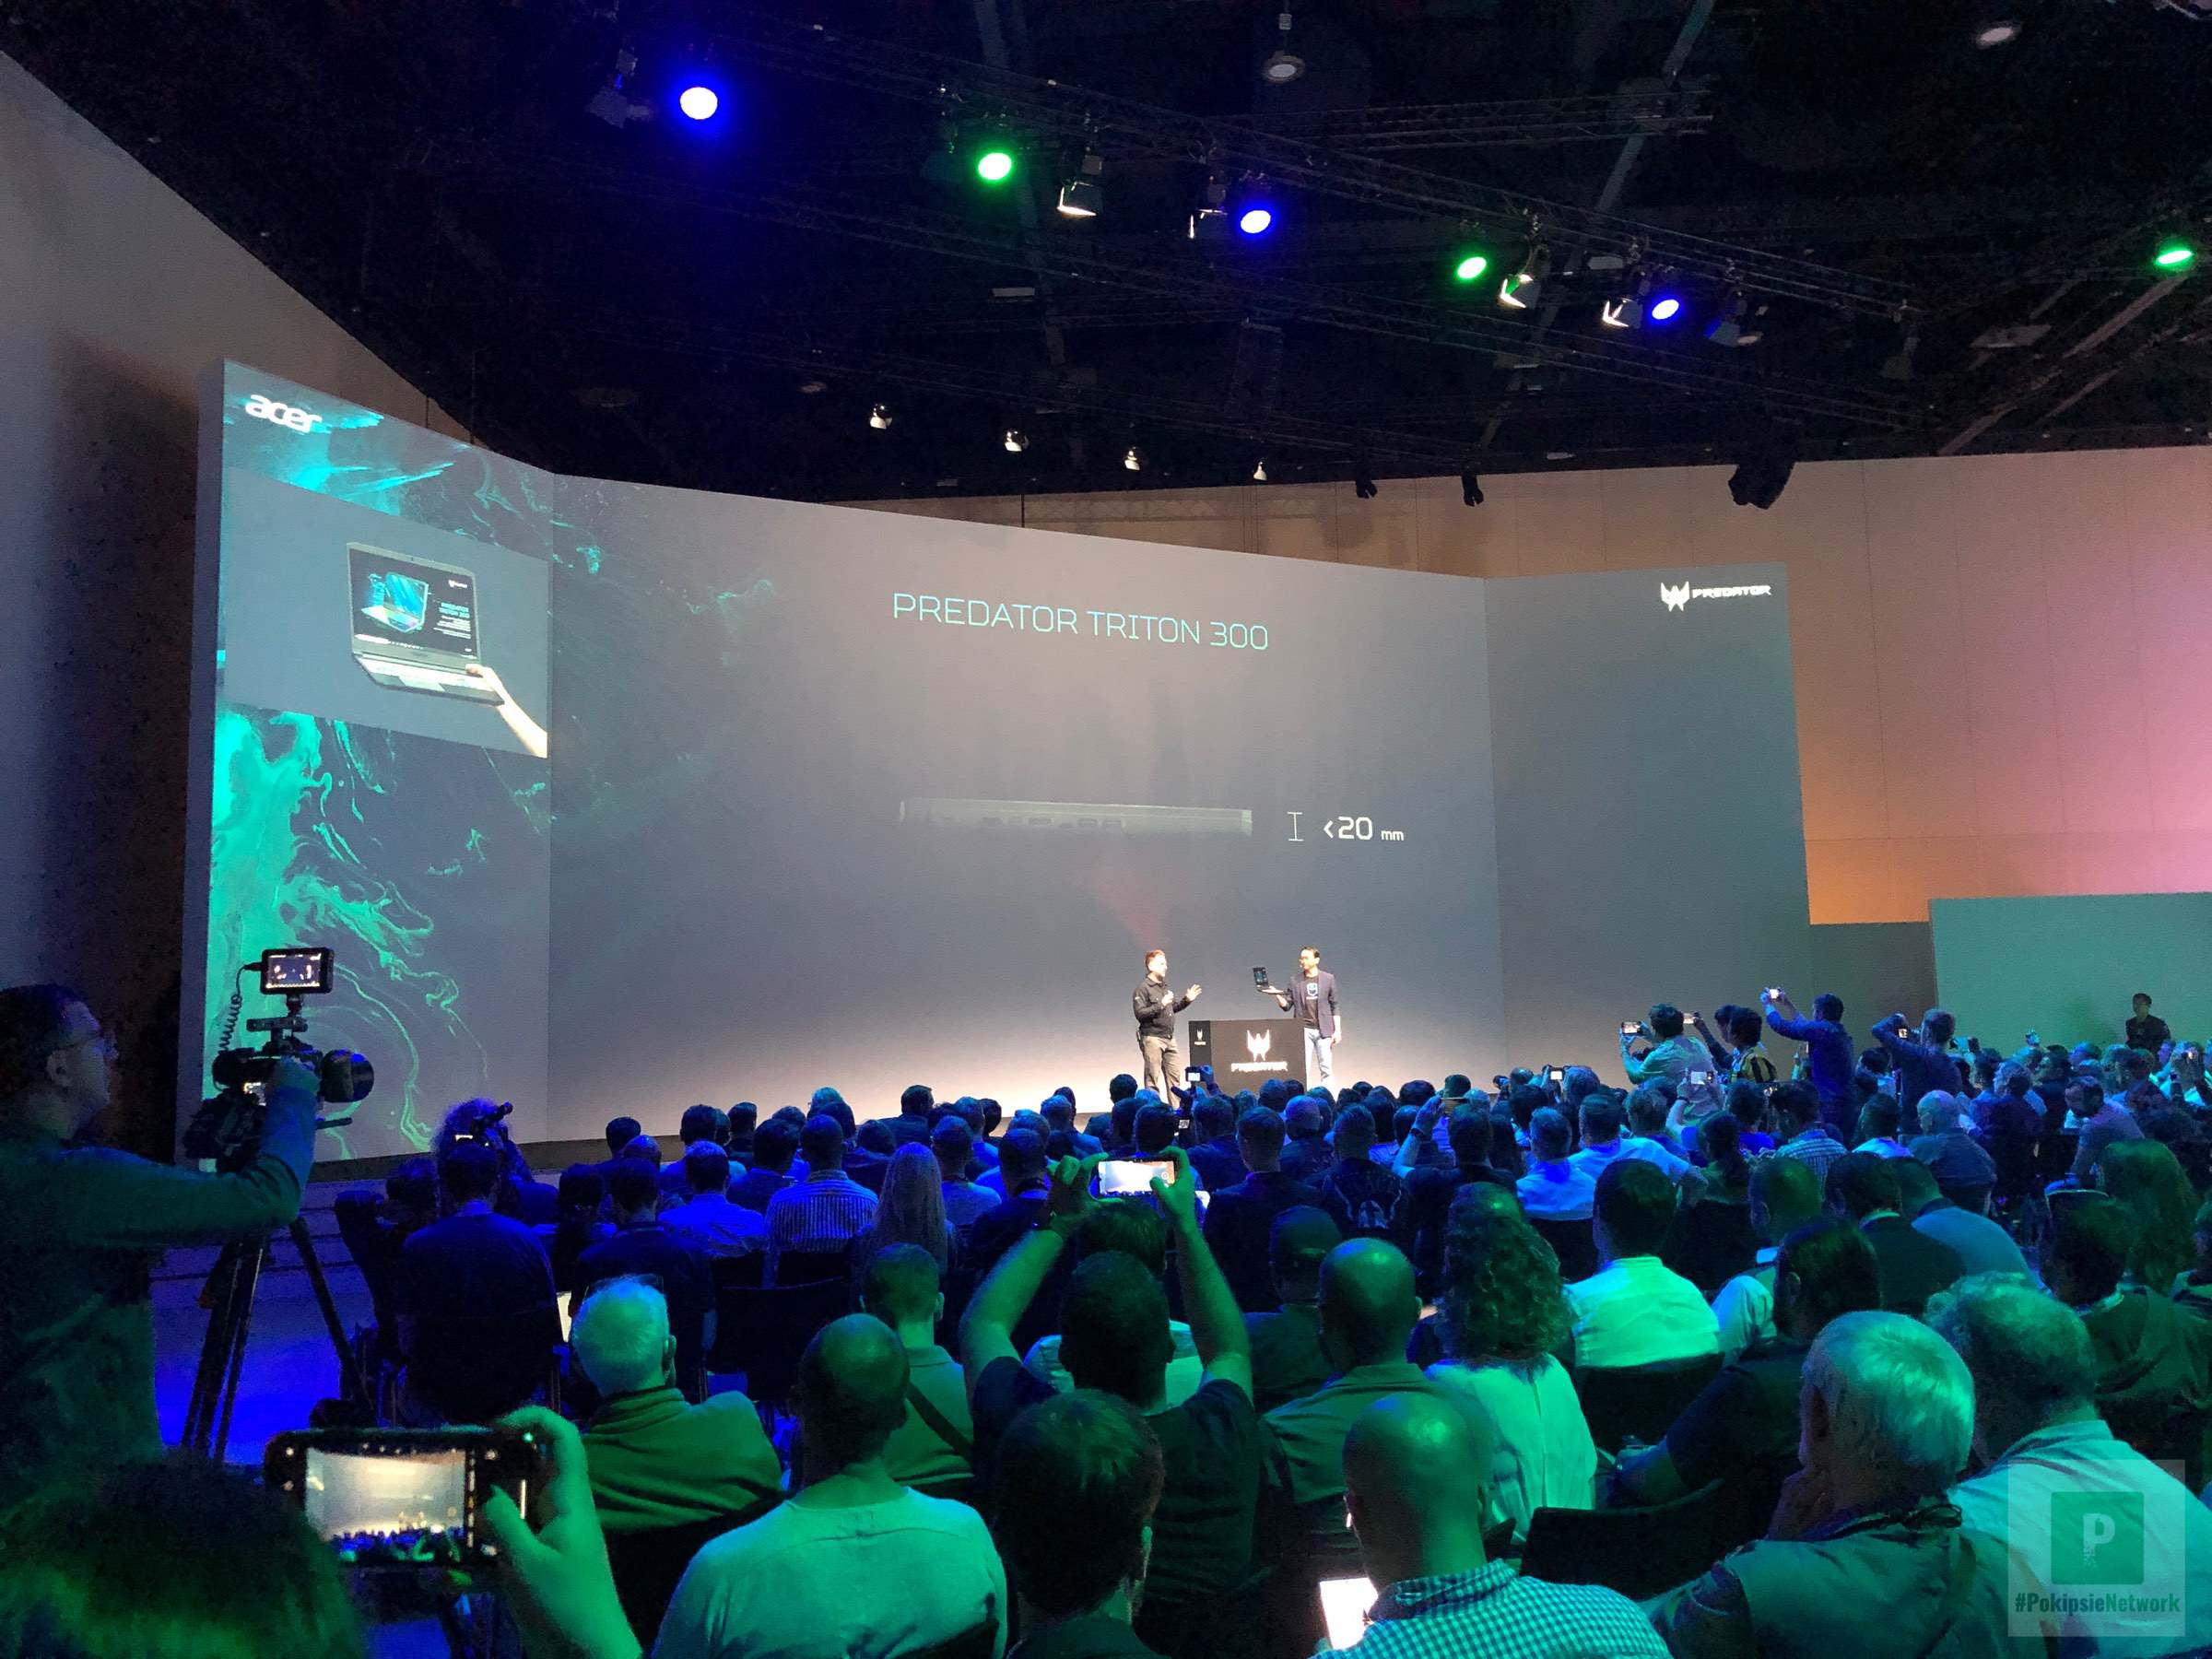 Acer Predator Triton: Neues Gaming-Notebook mit 300 Hz Display #IFA2019